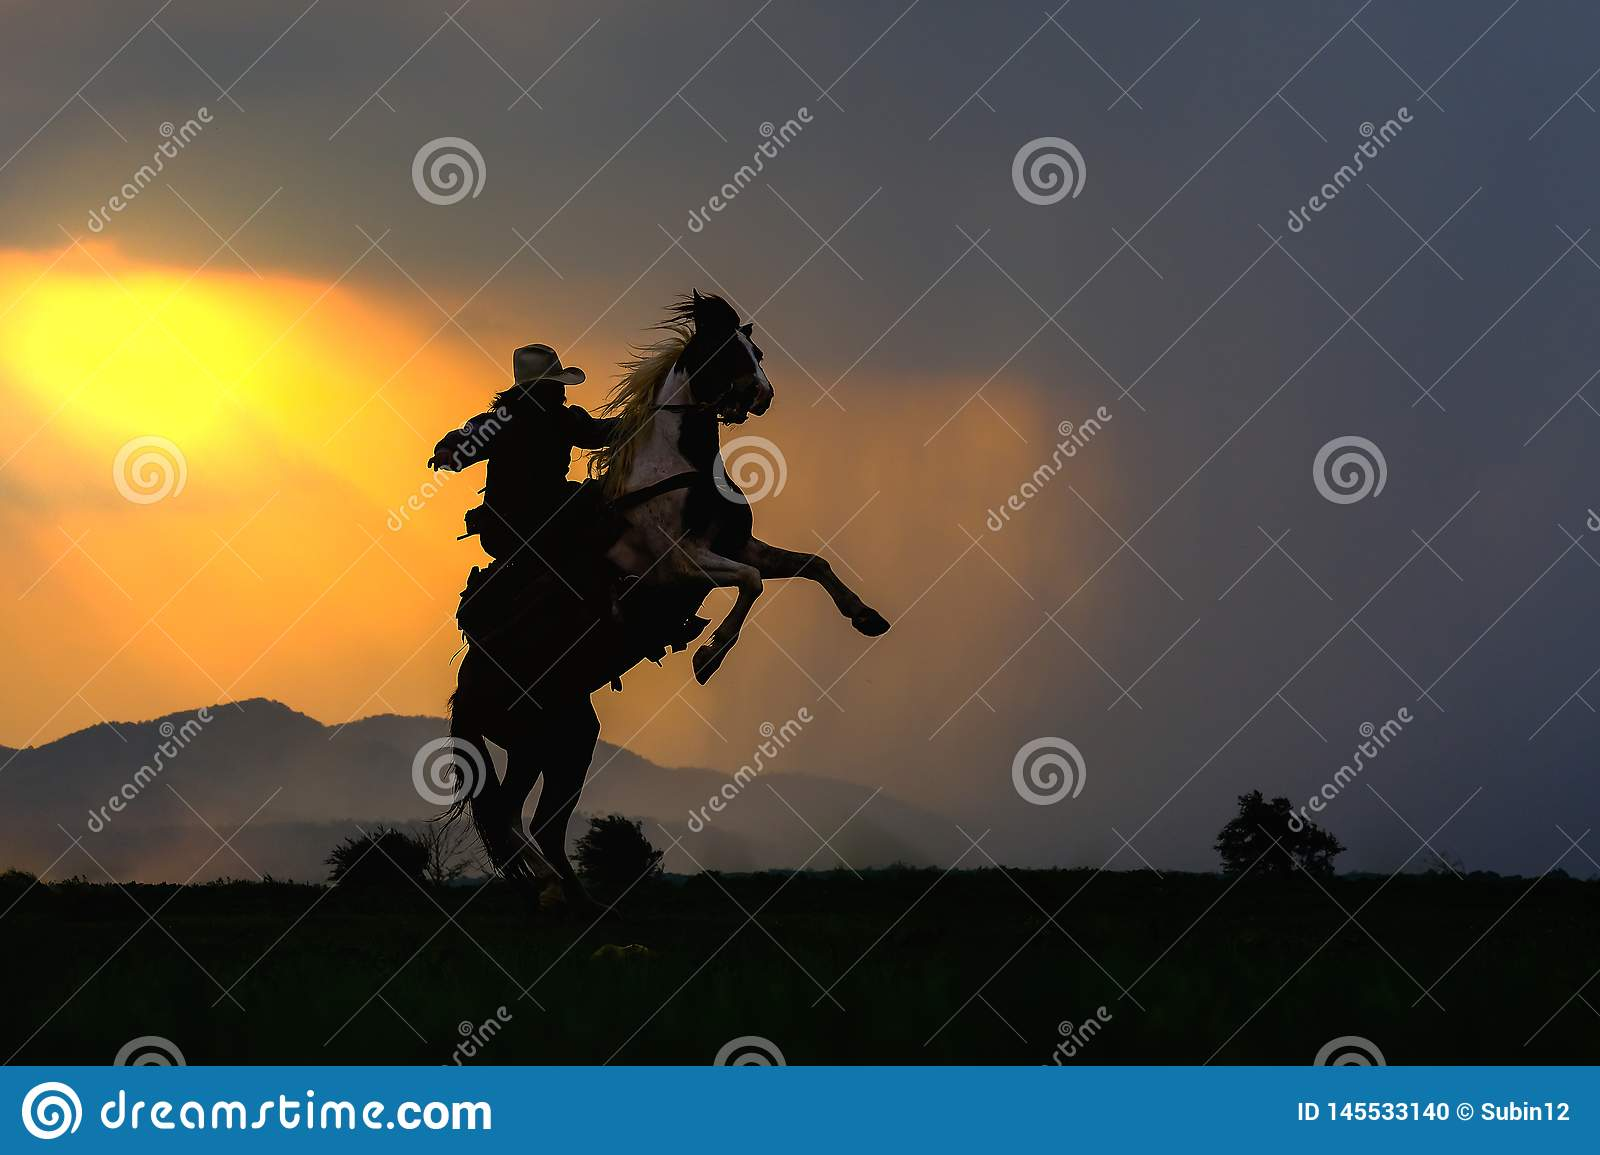 Cowboy silhouette on horse during nice sunset